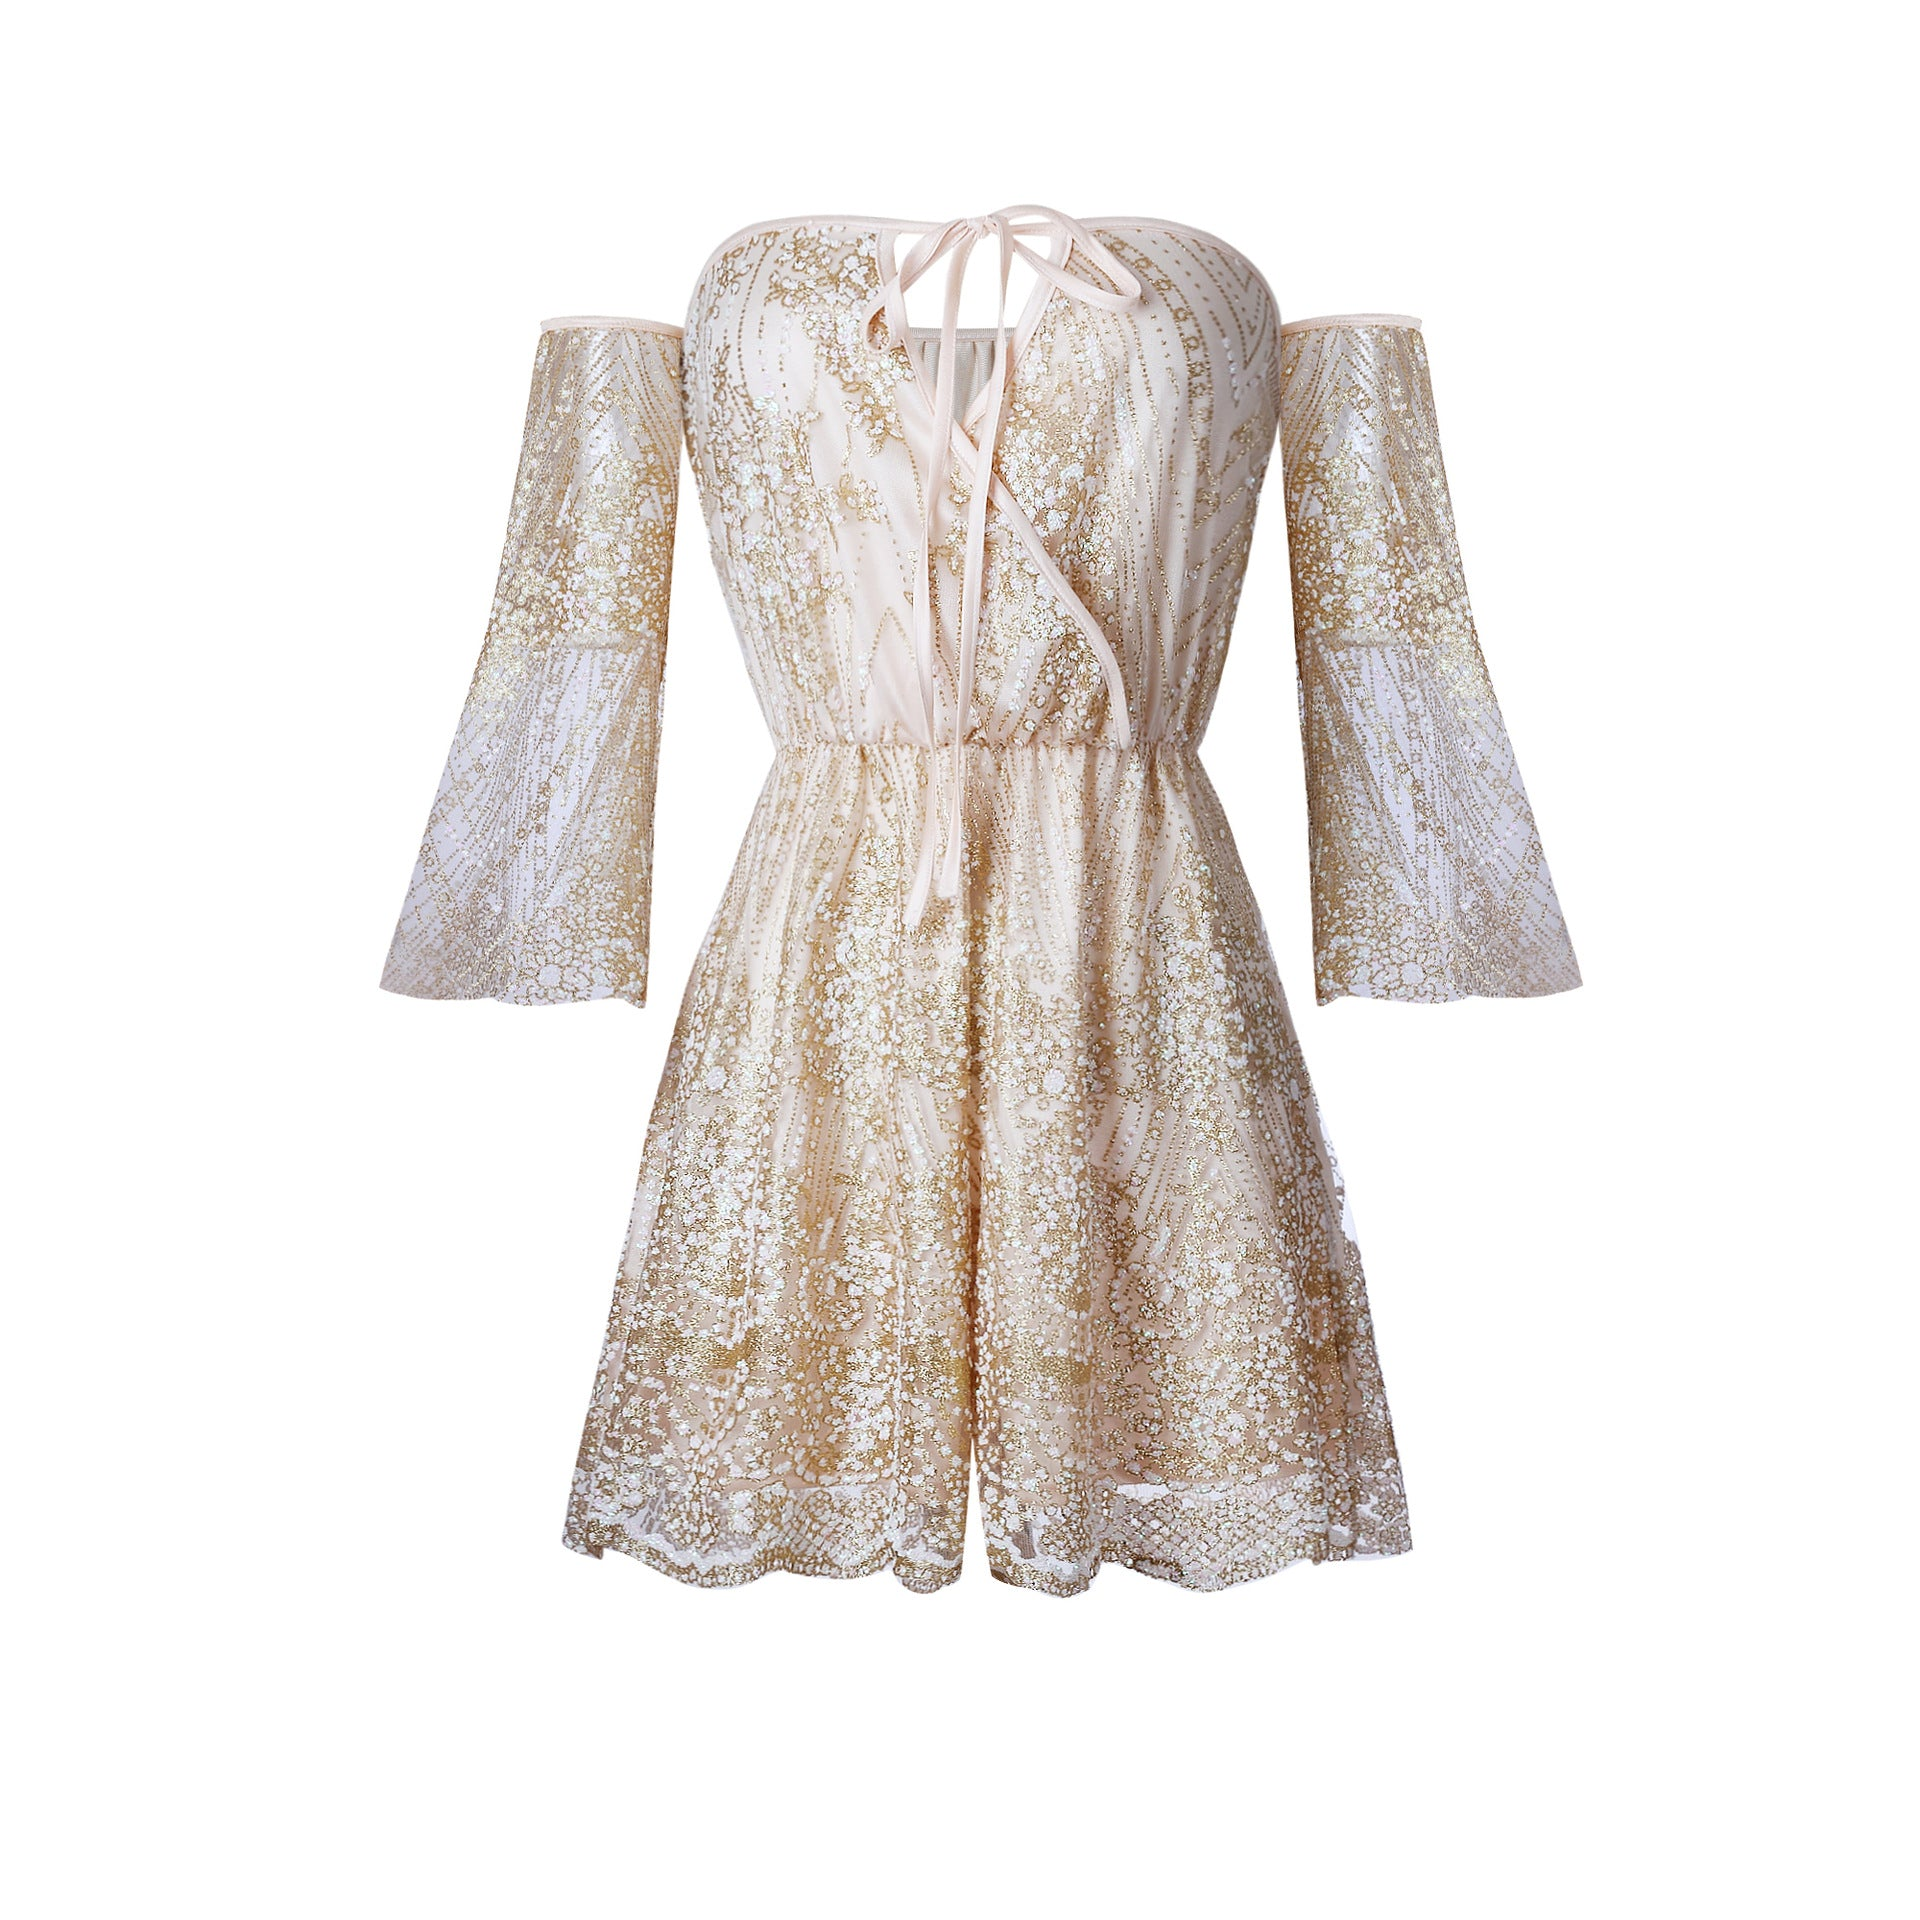 SUMMER SEQUIN PLAYSUIT Playsuit - Zia Clothing Company